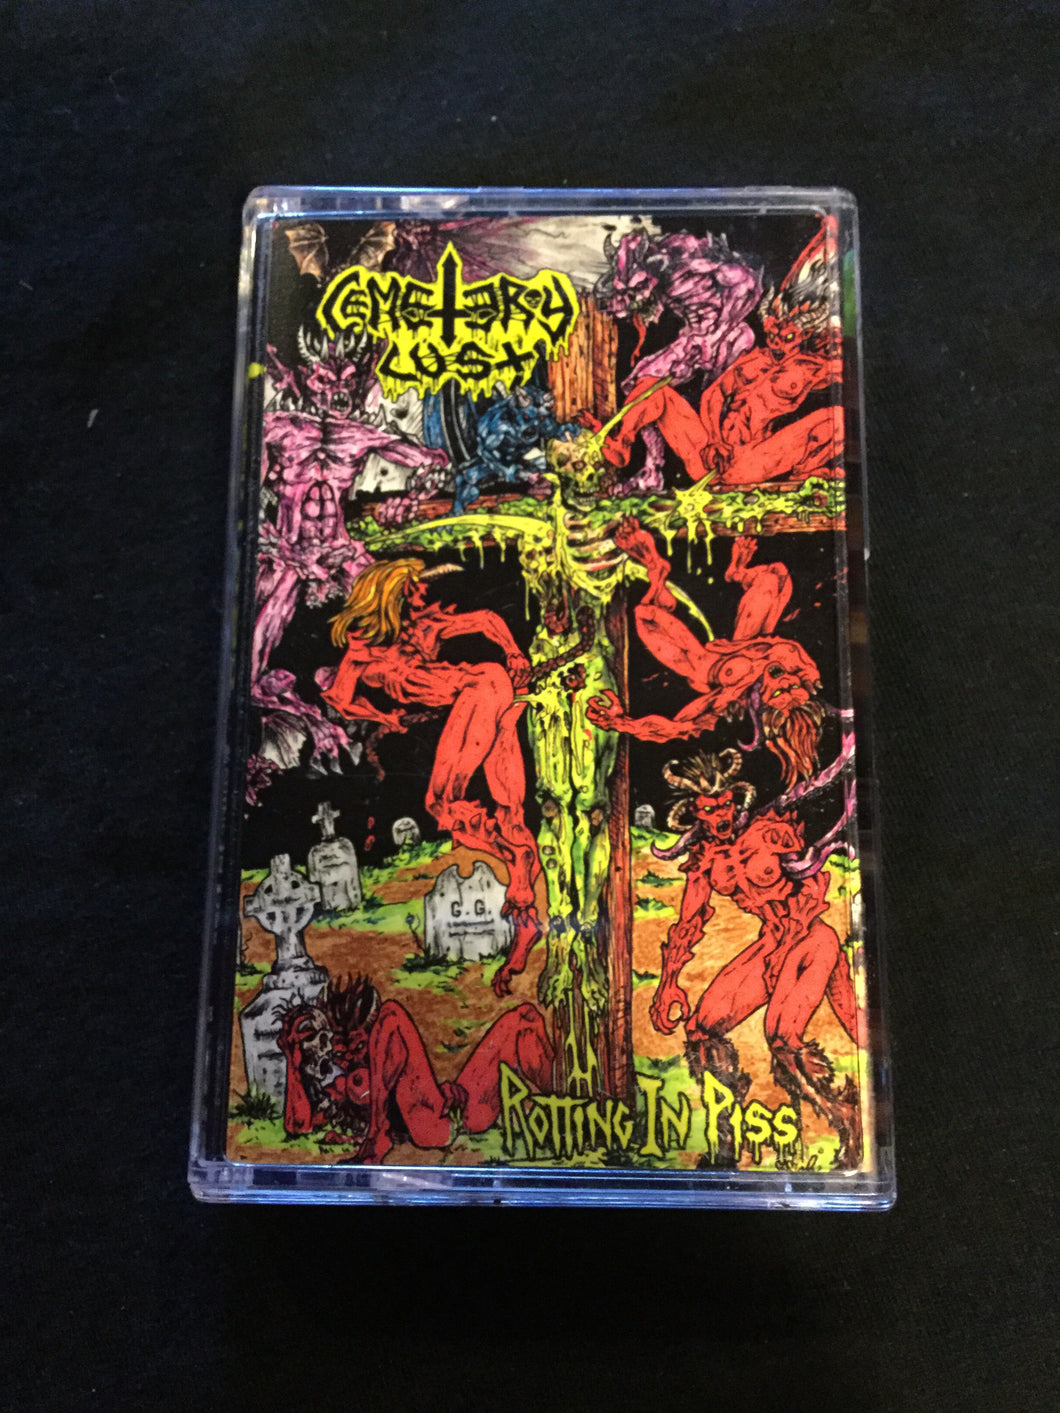 Cemetery Lust - Rotting In Piss Tape